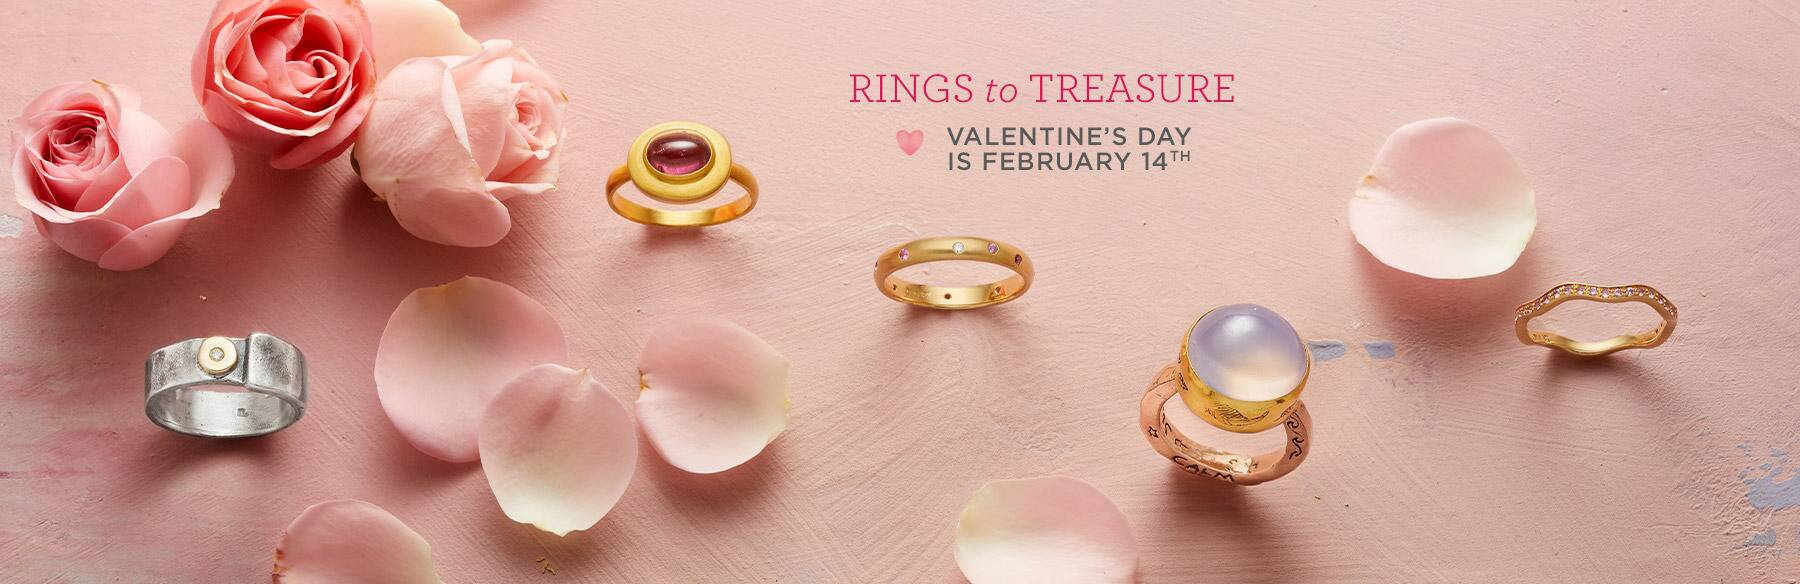 Rings to Treasure